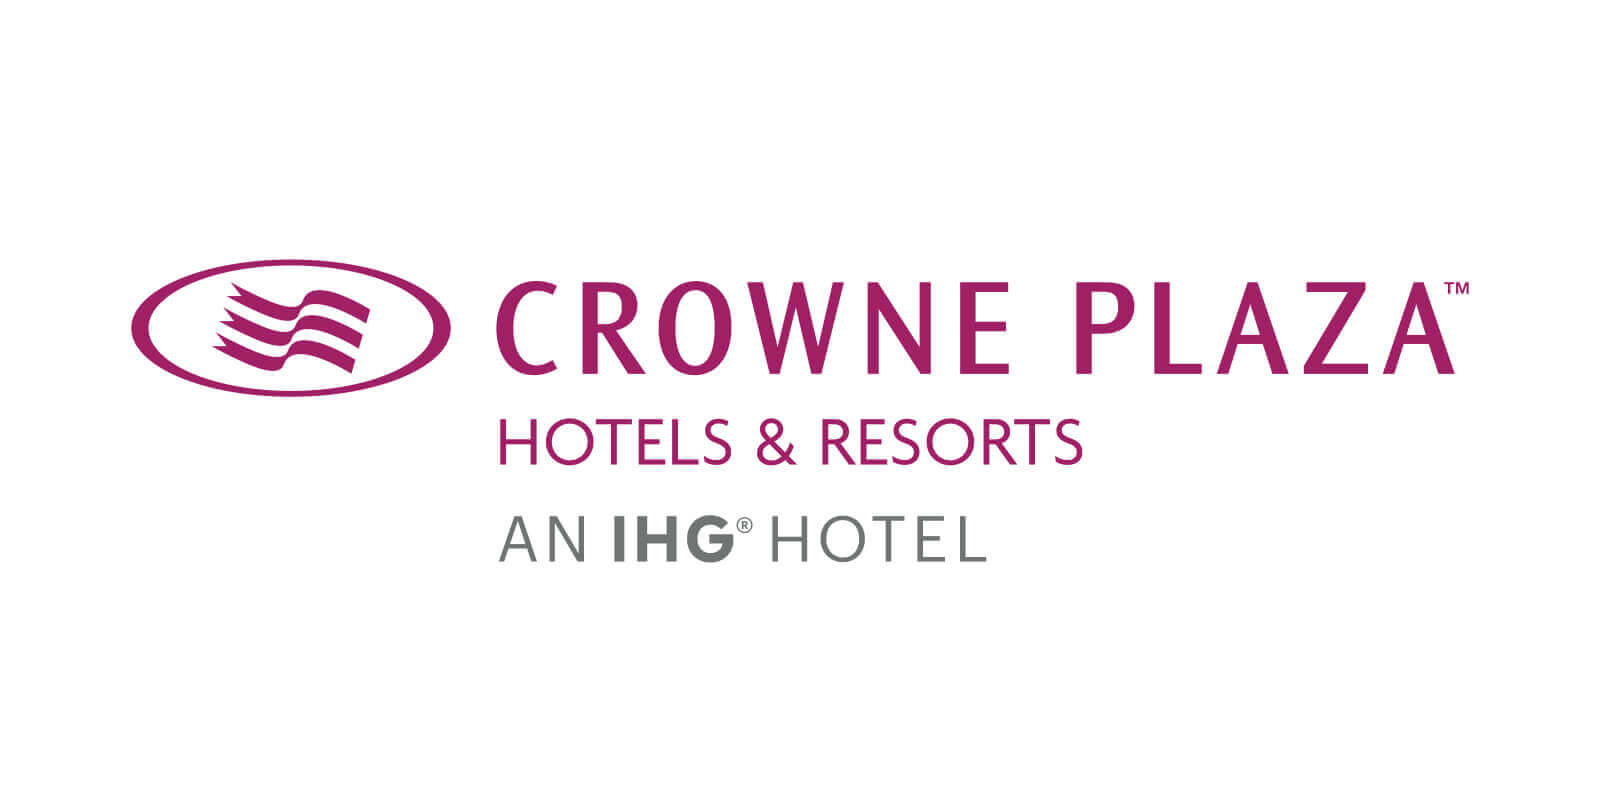 Crowne Plaza Group